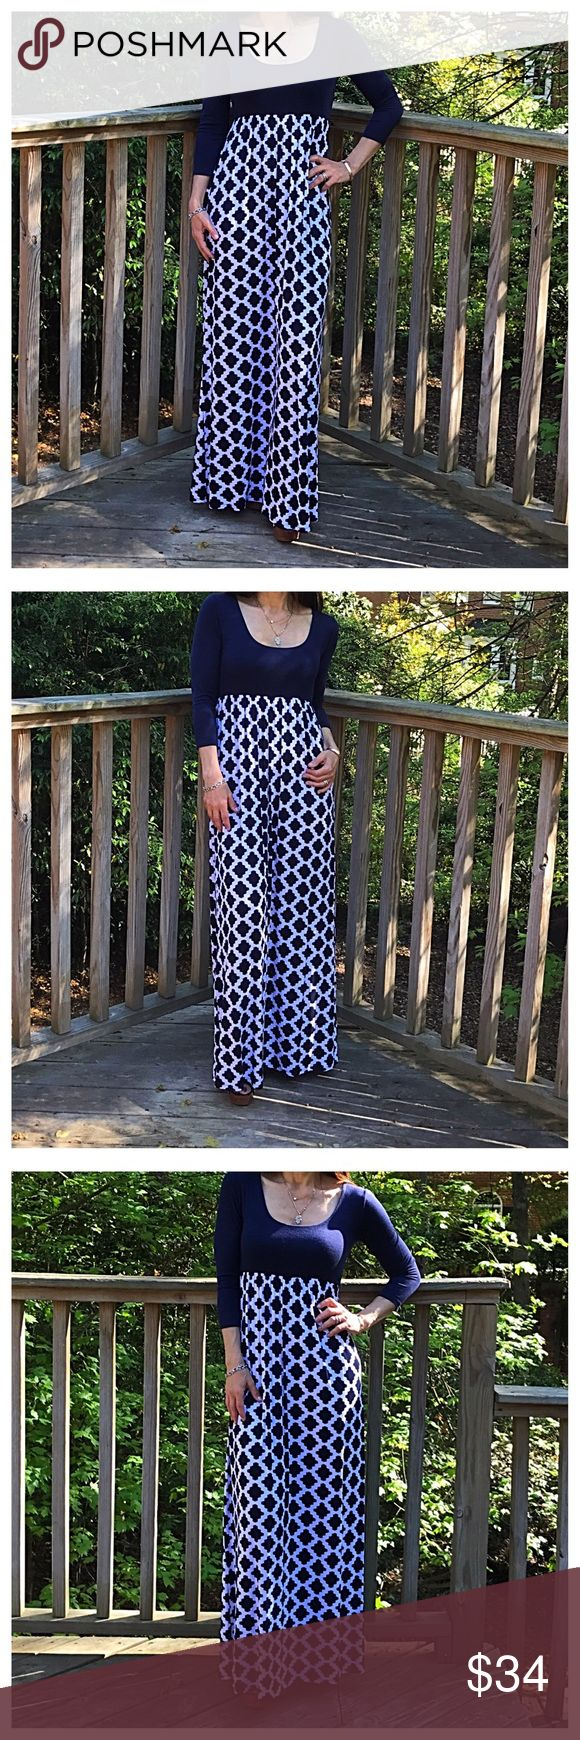 🆕 3/4 sleeves chic print maxi dress Hour Glass Lilly gorgeous scooped neck navy blue 3/4 sleeves maxi dress PLEASE Use the Poshmark new option you can purchase and it will give you the option to pick the size you want ( all sizes are available) BUNDLE and save 10% ( no trades price is firm unless bundled) Dresses Maxi